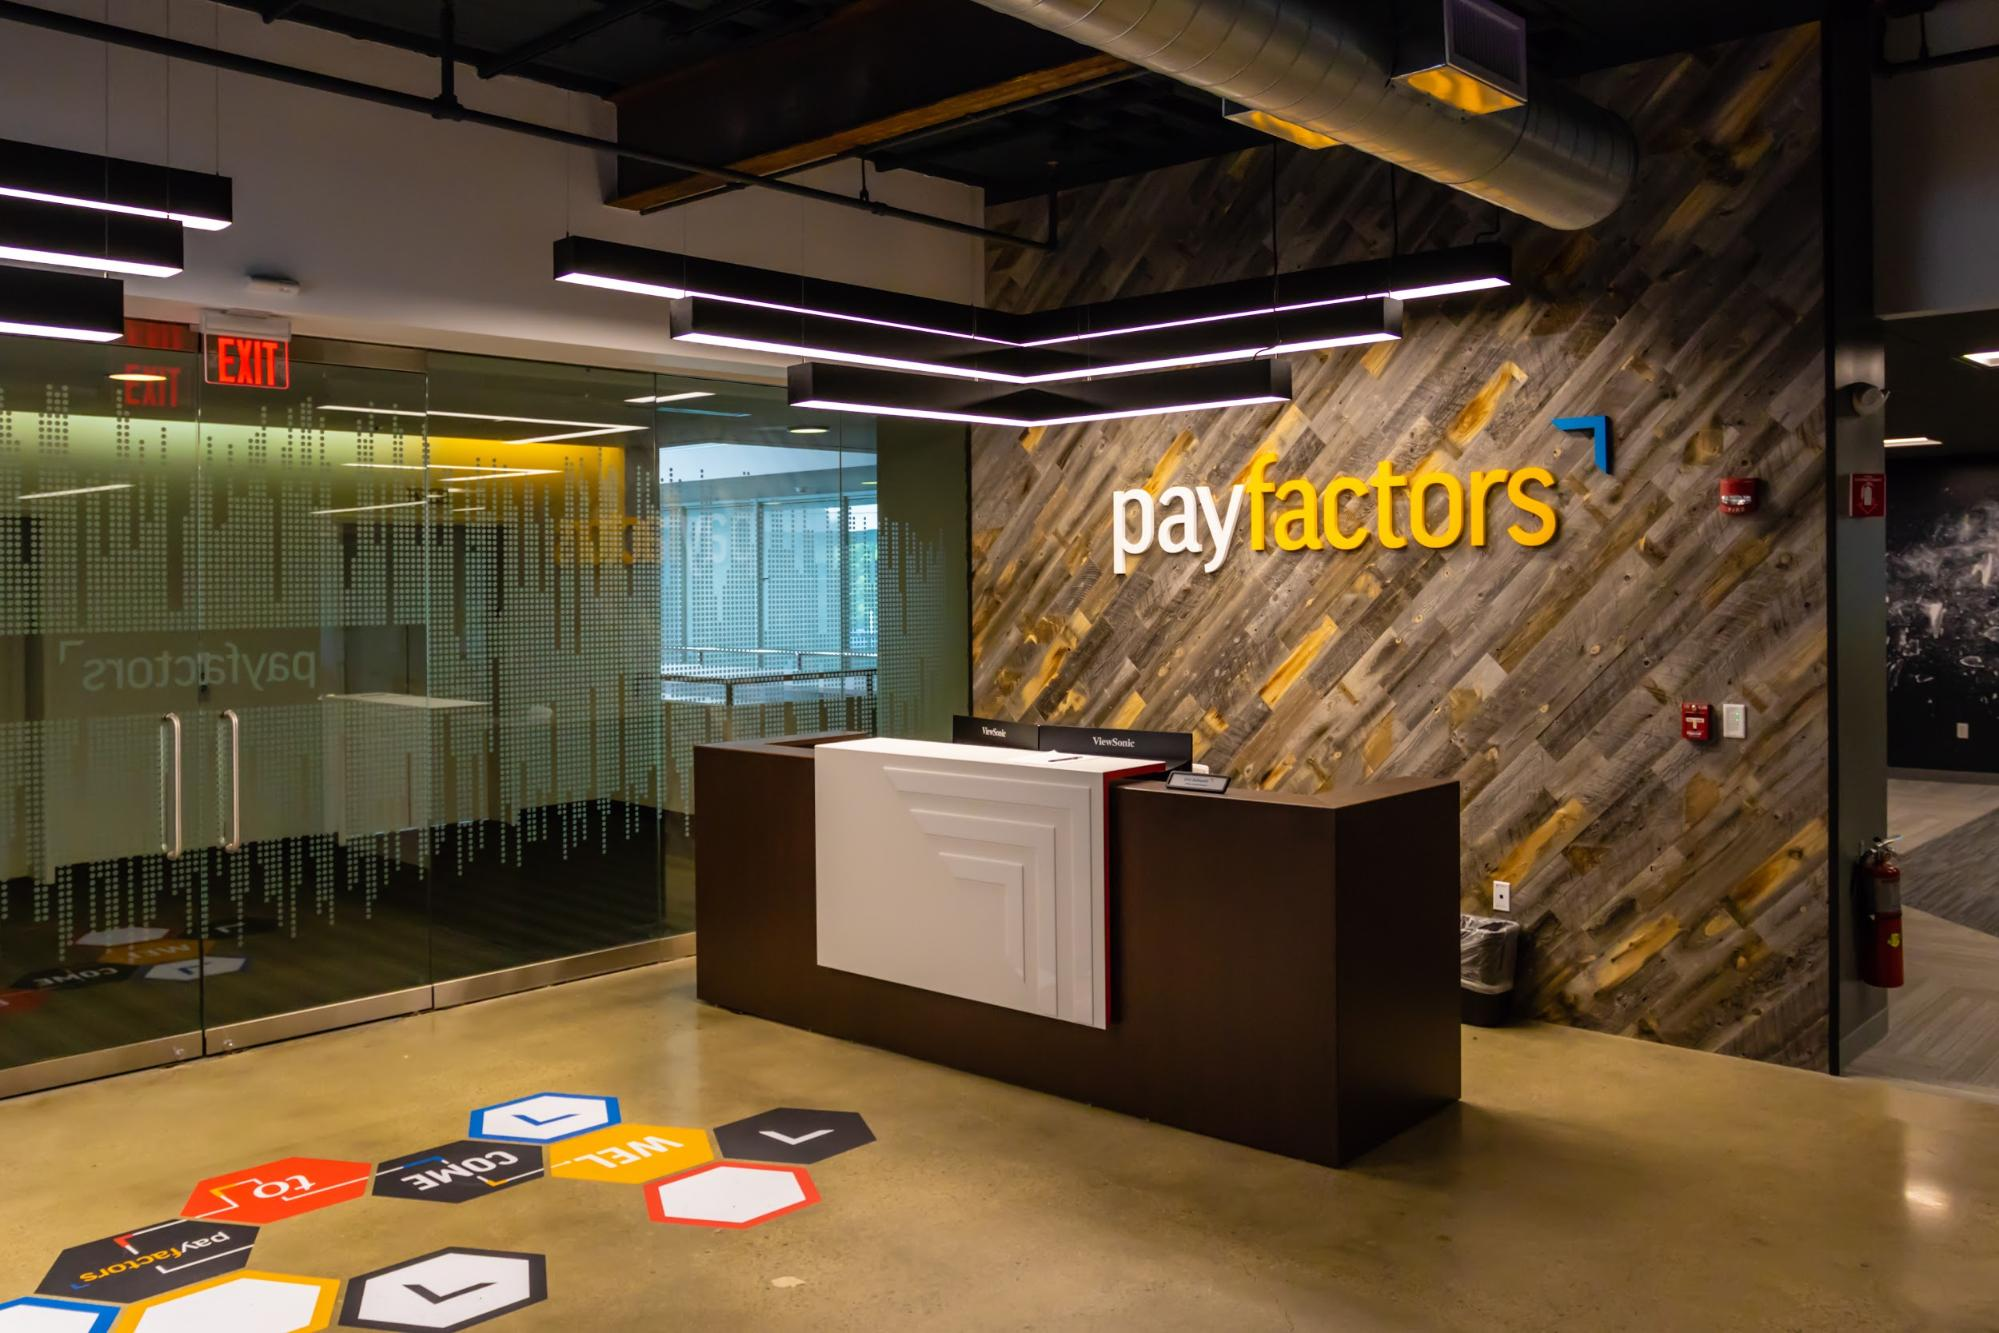 Payfactors' front lobby